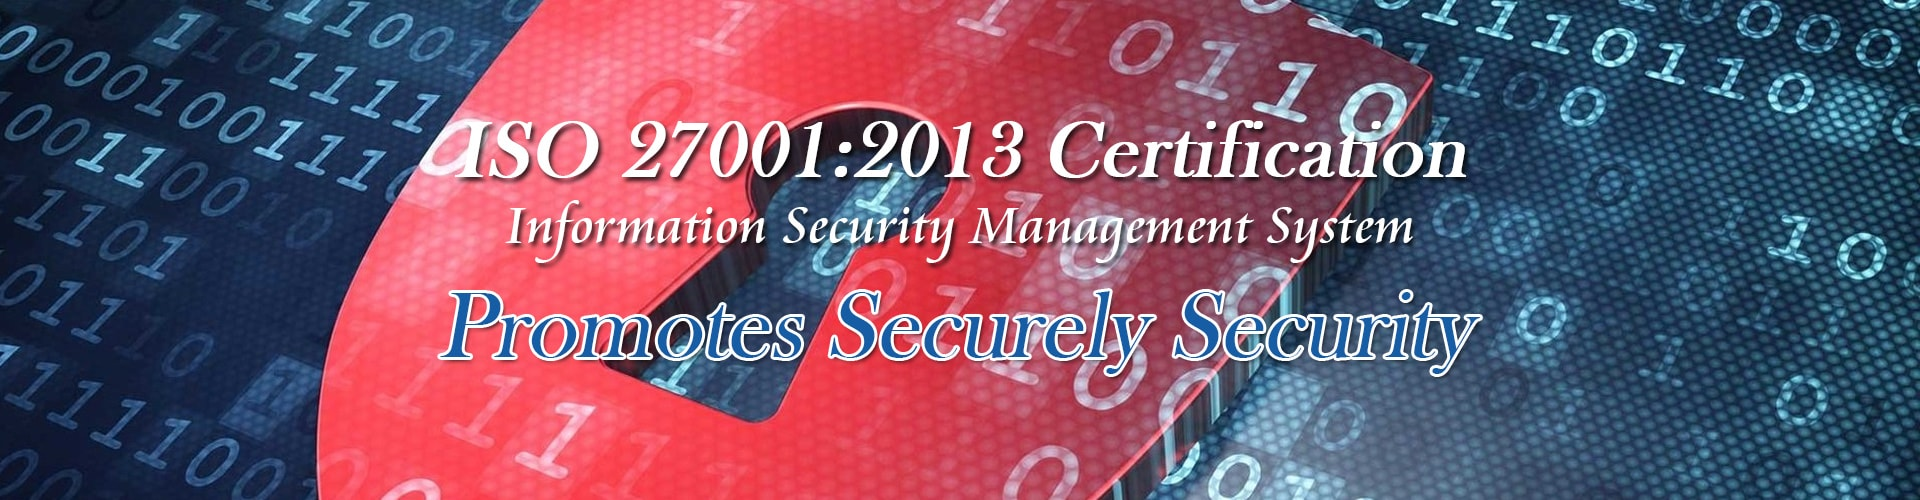 iso 27001:2005 certification